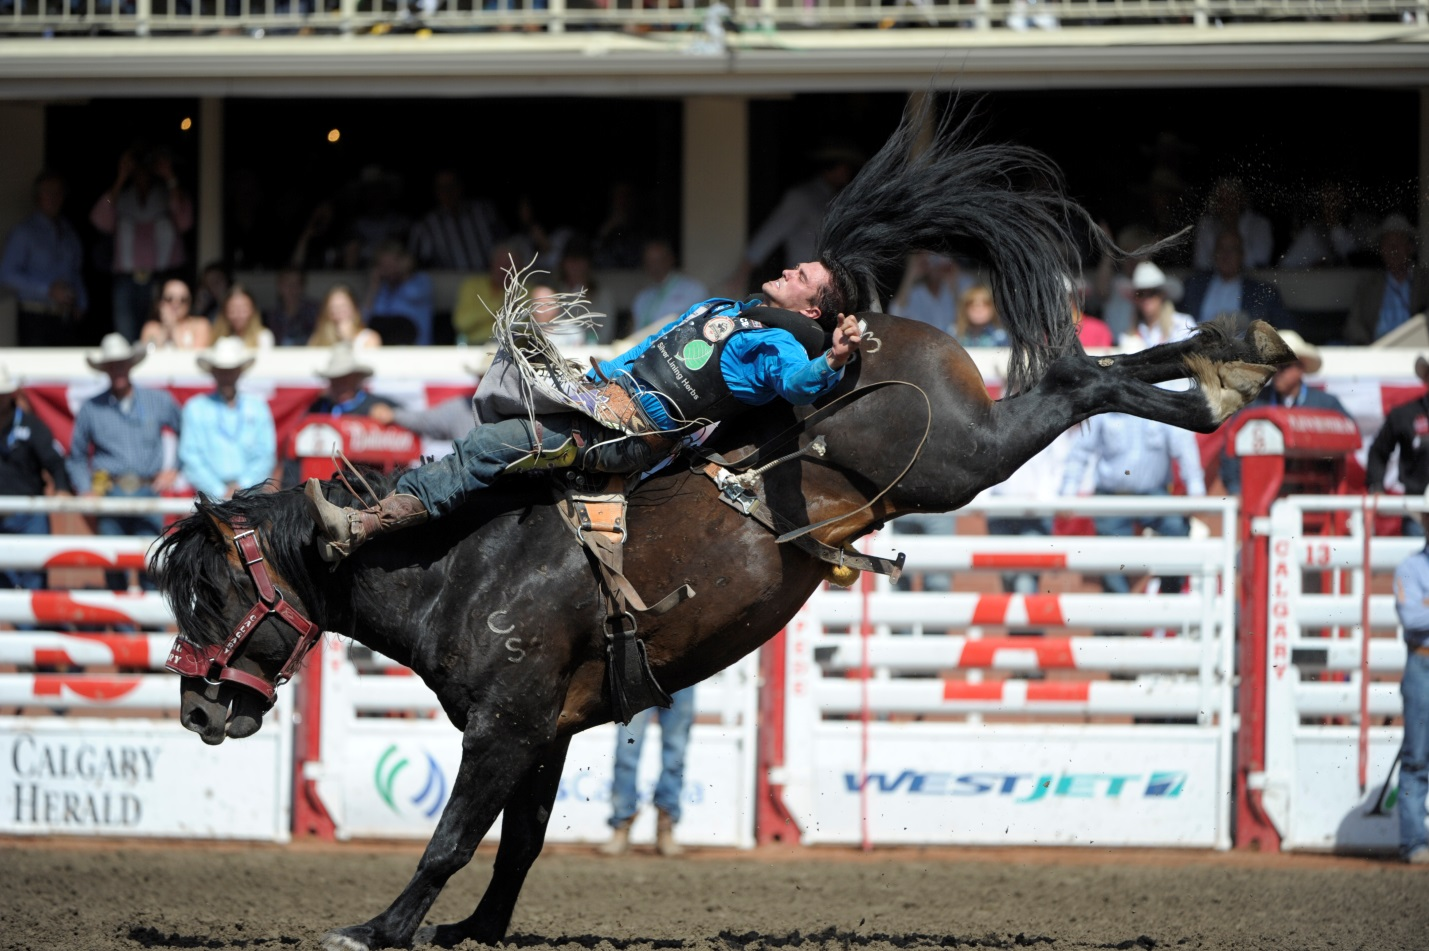 Stampede Bucking Stock Selected For The Canadian Finals